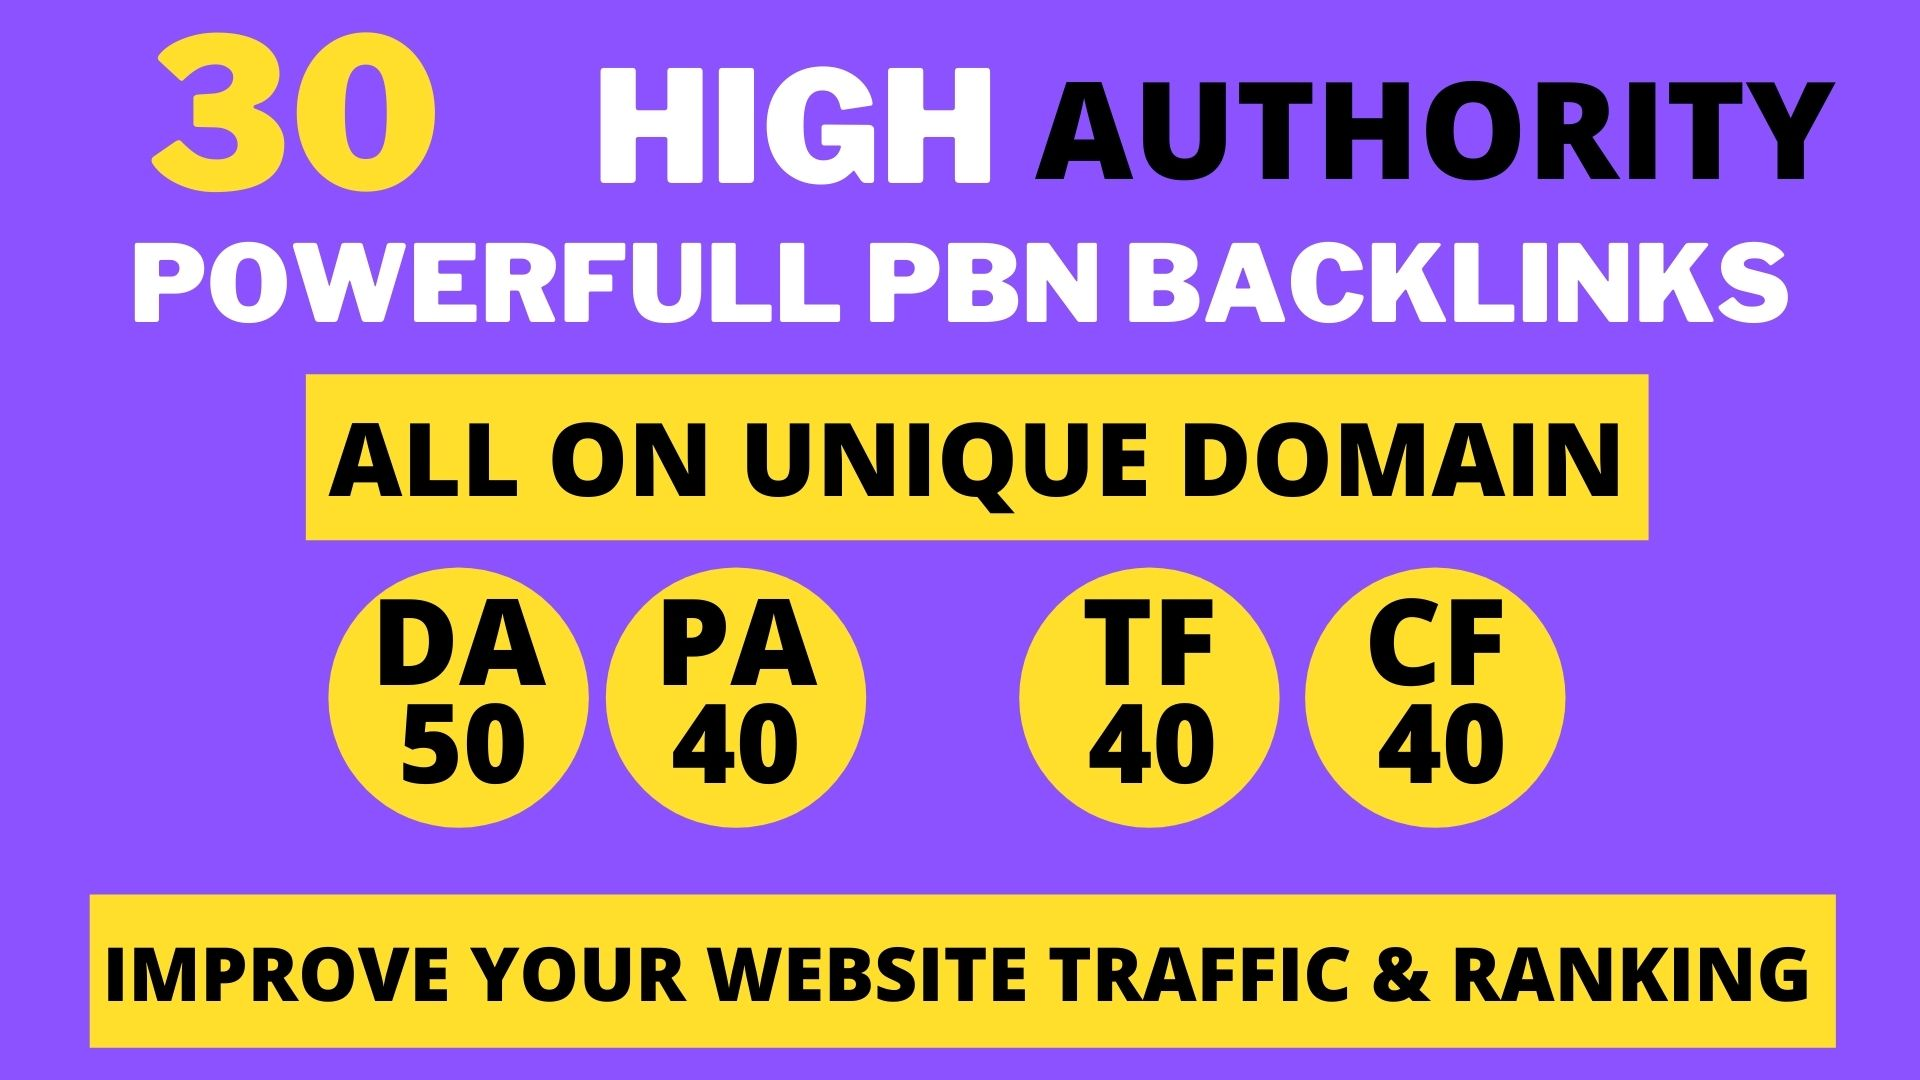 Get powerfull 30+ pbn backlink with high DA/PA/TF/CF on your homepage with unique website